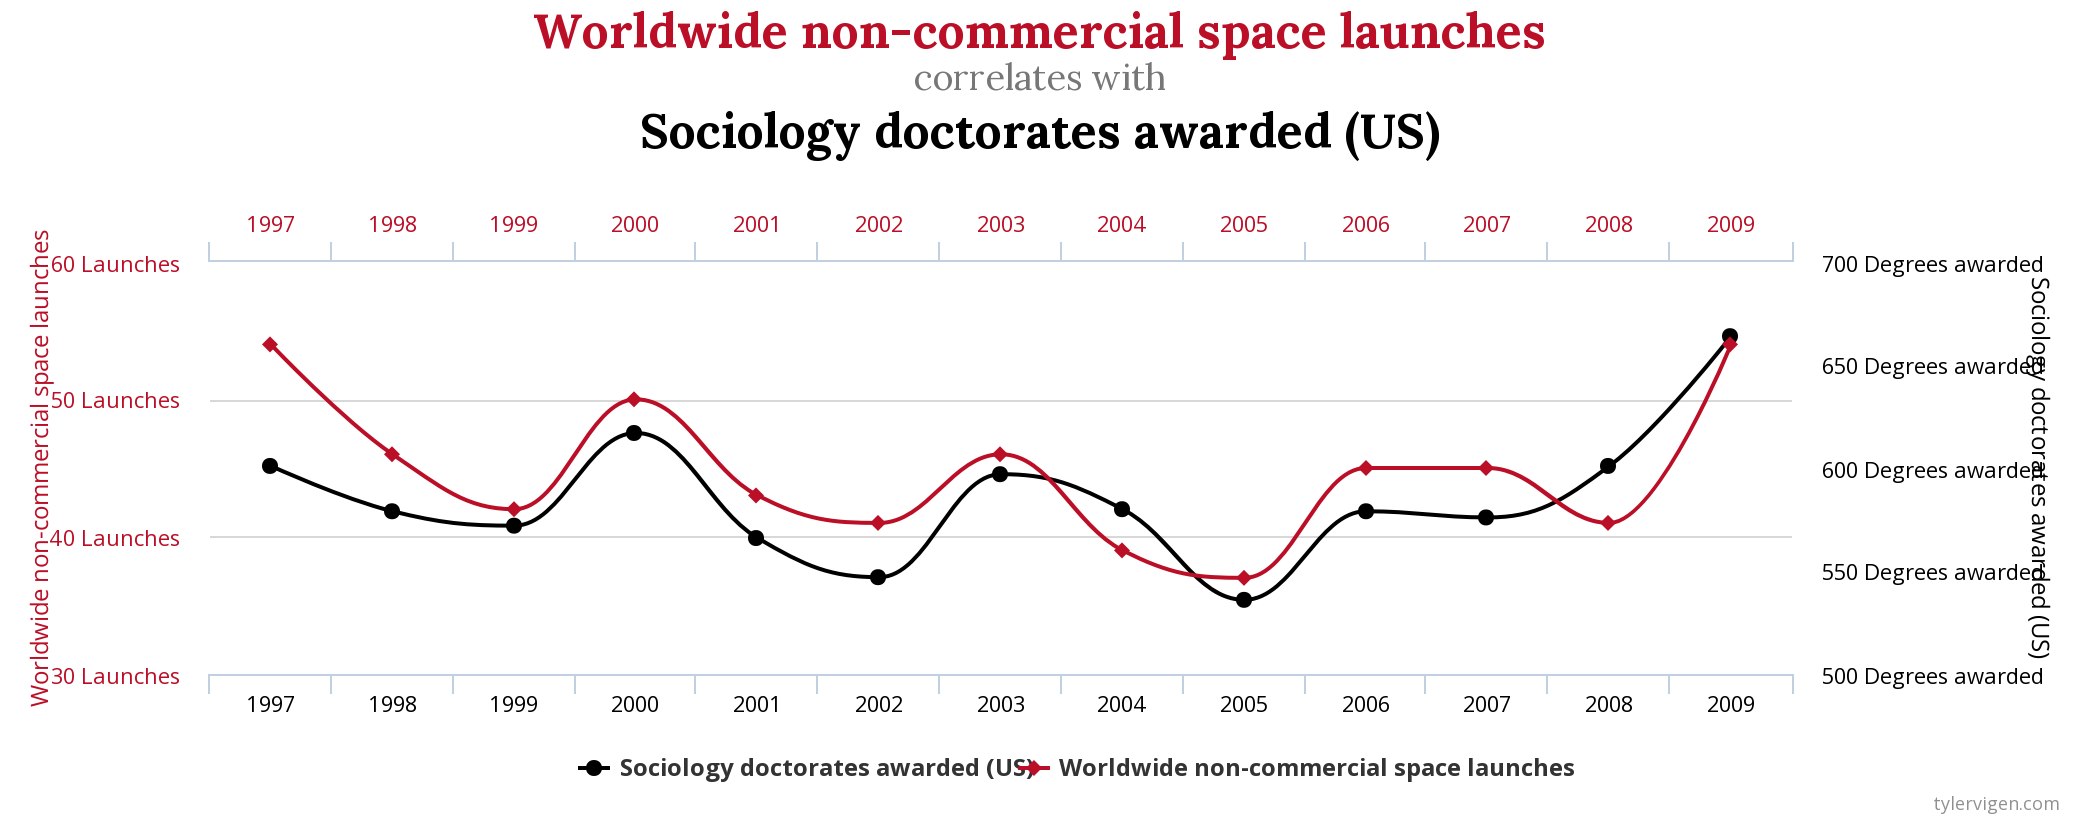 Figure source: Spurious Correlations.